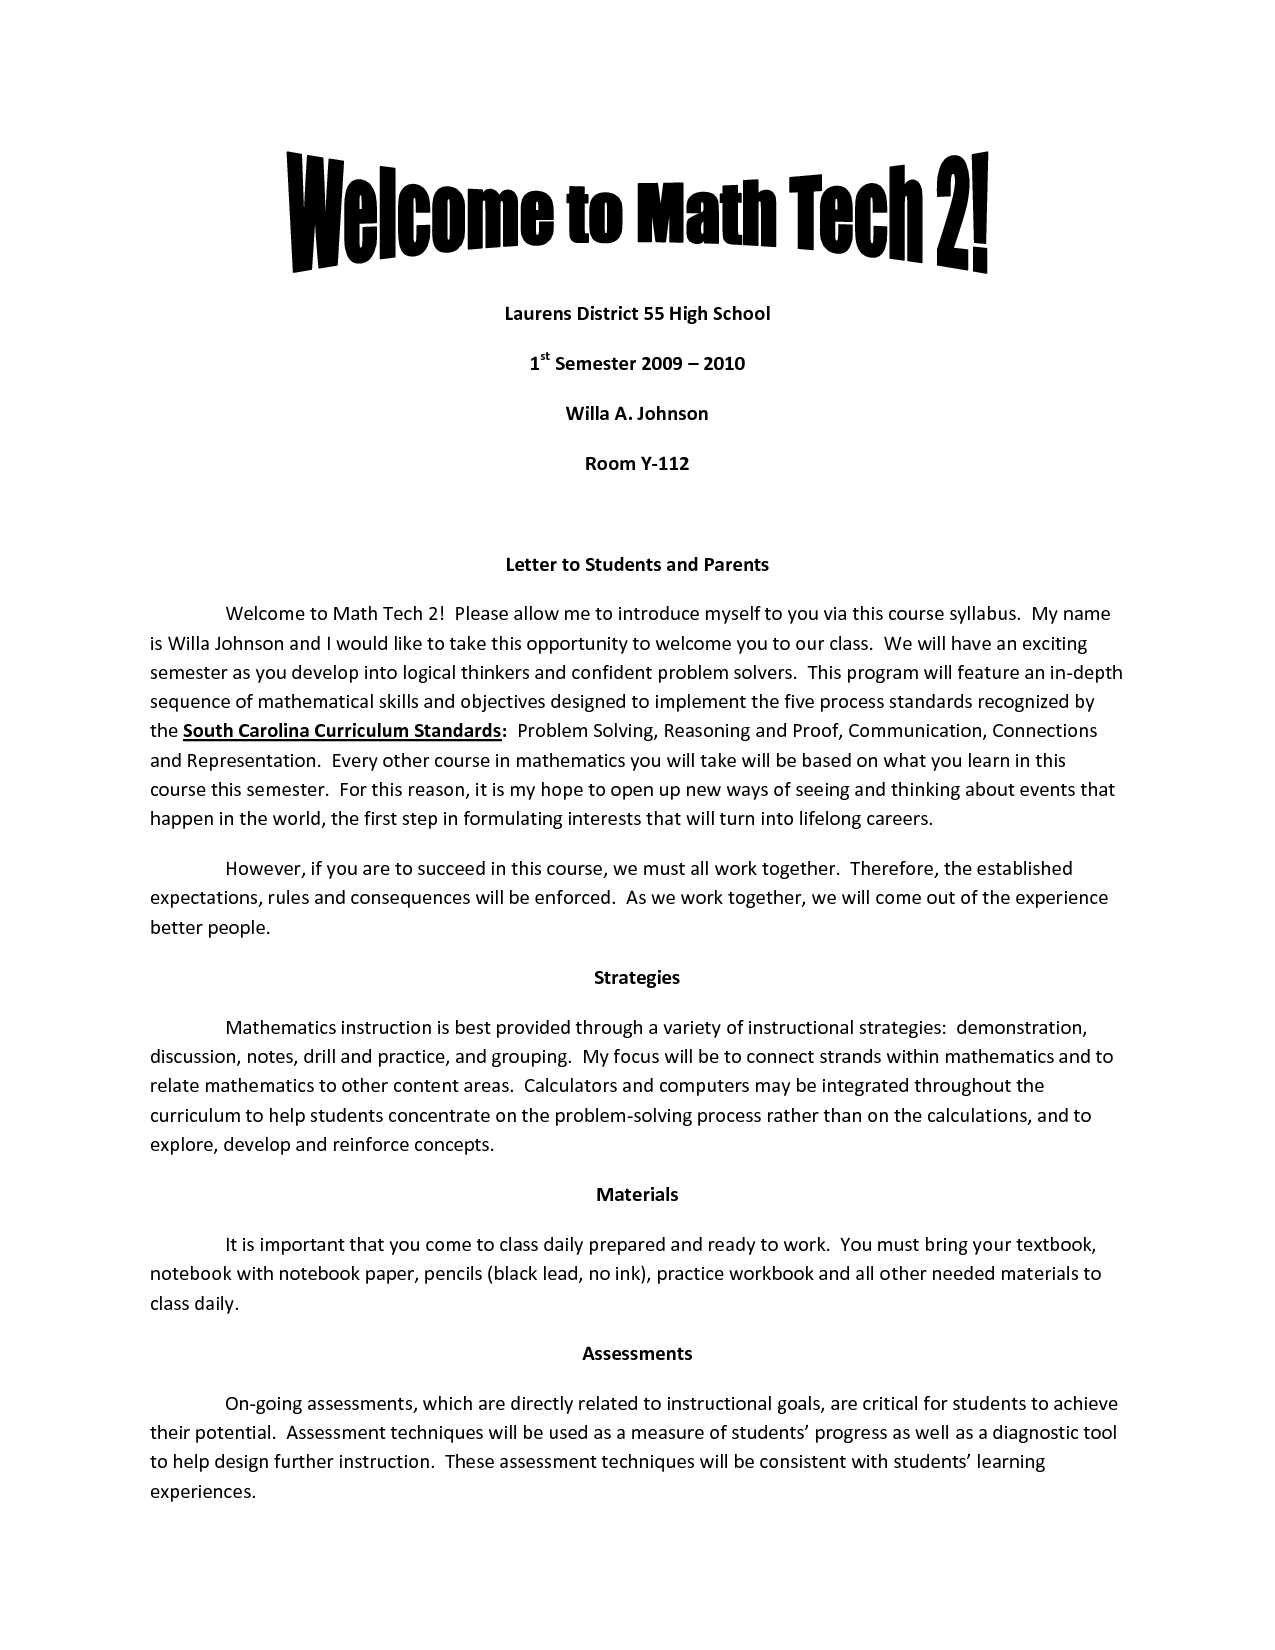 Teacher Introduction Letter For High School Google